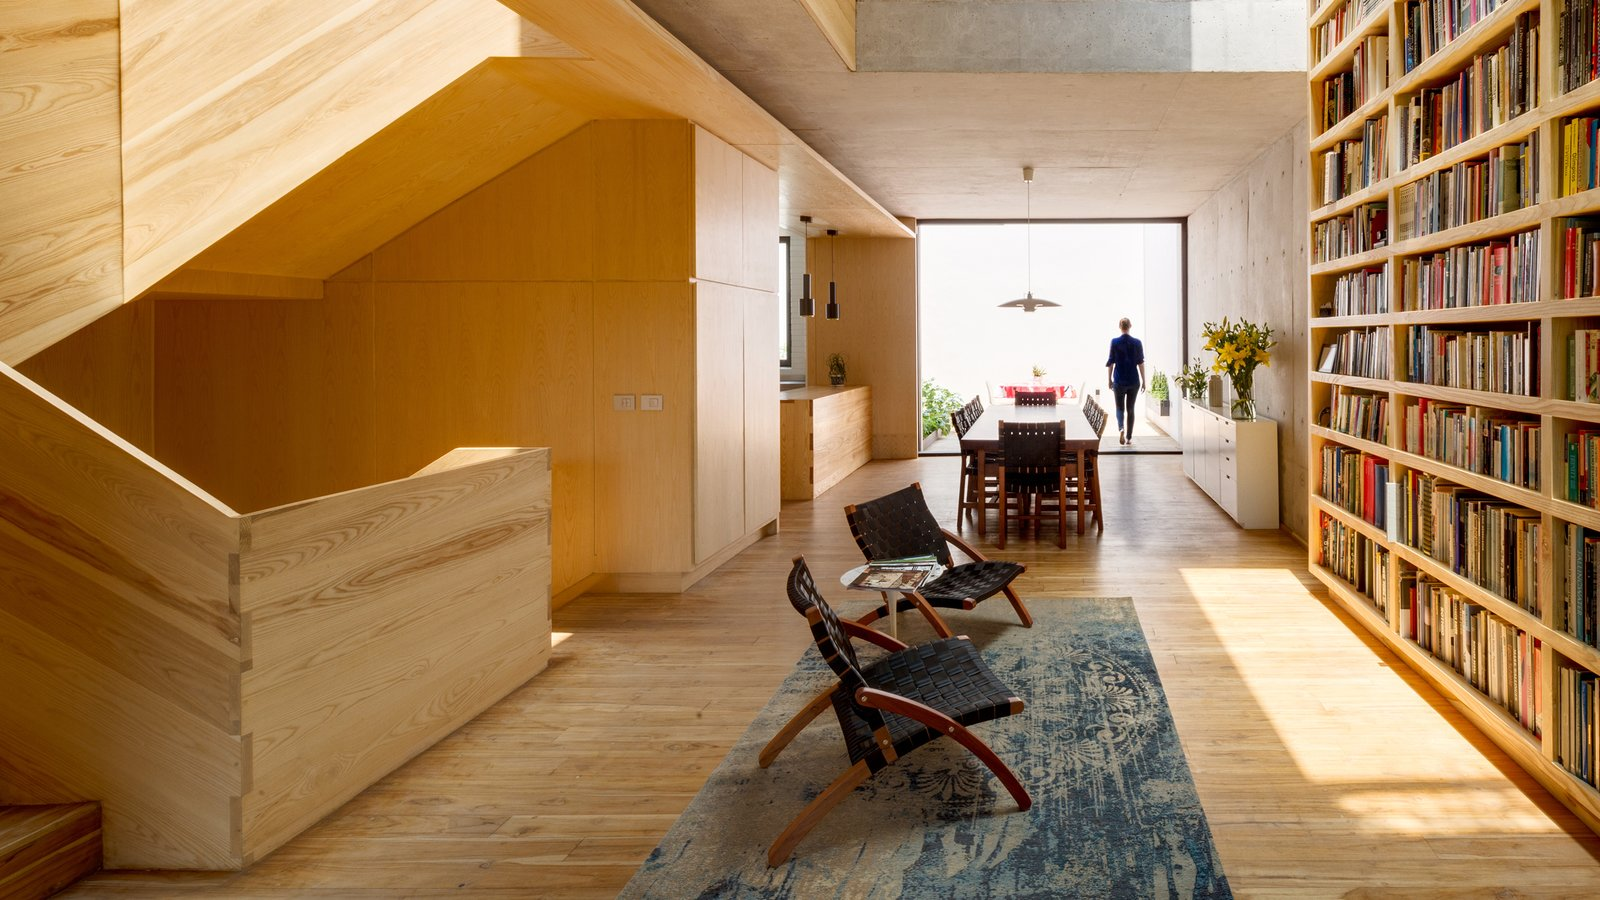 Living Room, Rug Floor, Chair, End Tables, Bookcase, and Light Hardwood Floor  Photo 1 of 10 in A Sculptural Wooden Staircase Steals the Show in This Mexico City Abode